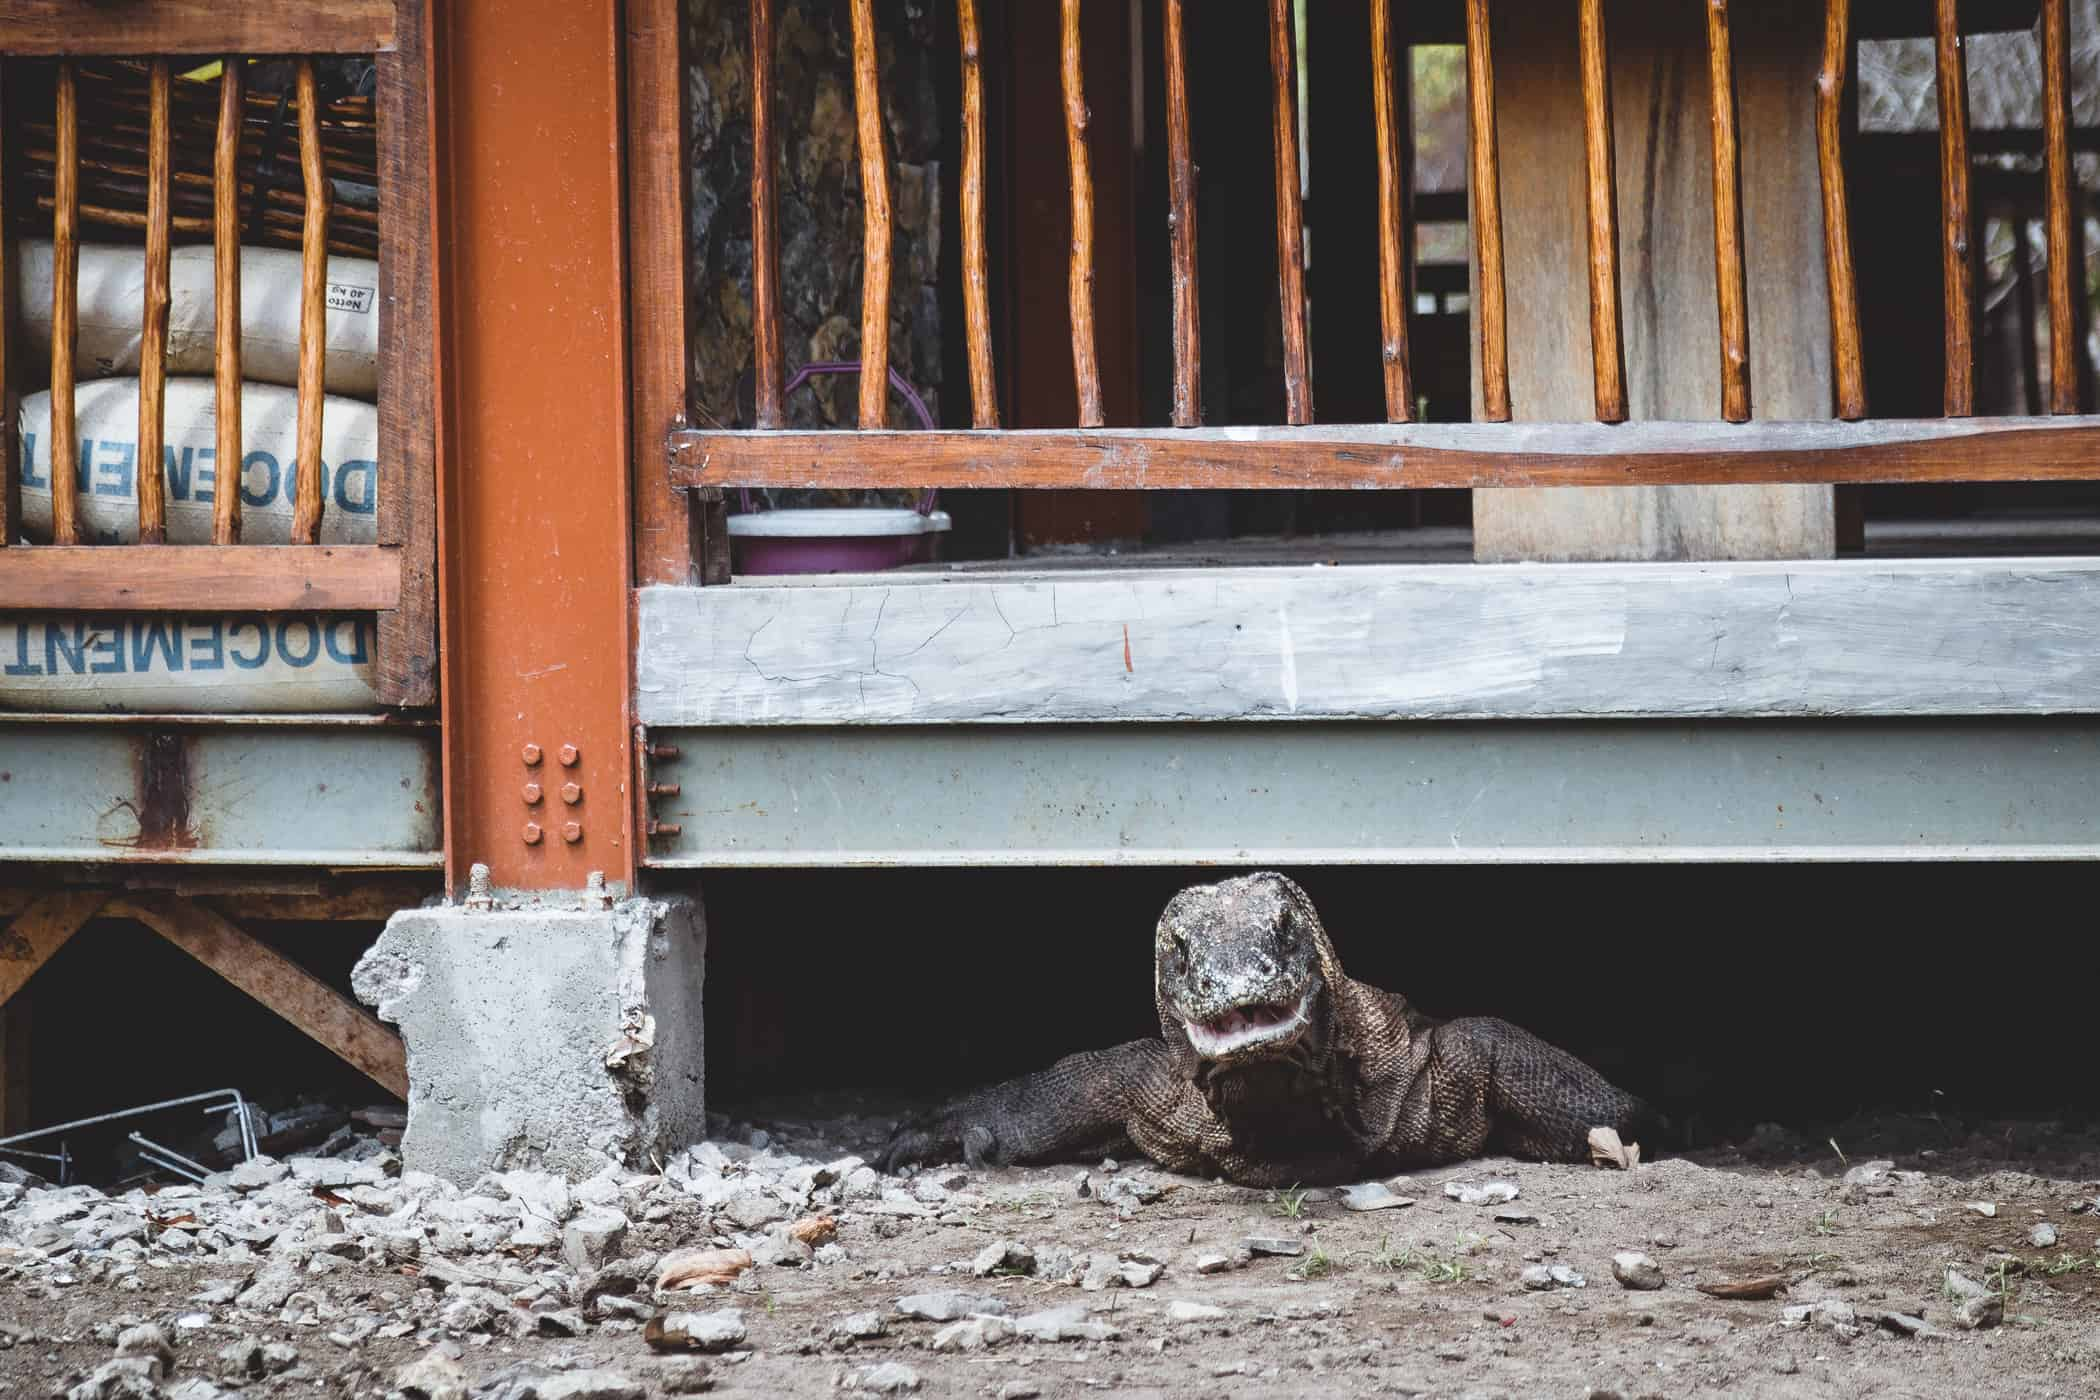 A Komodo Dragon Hides in the Shade